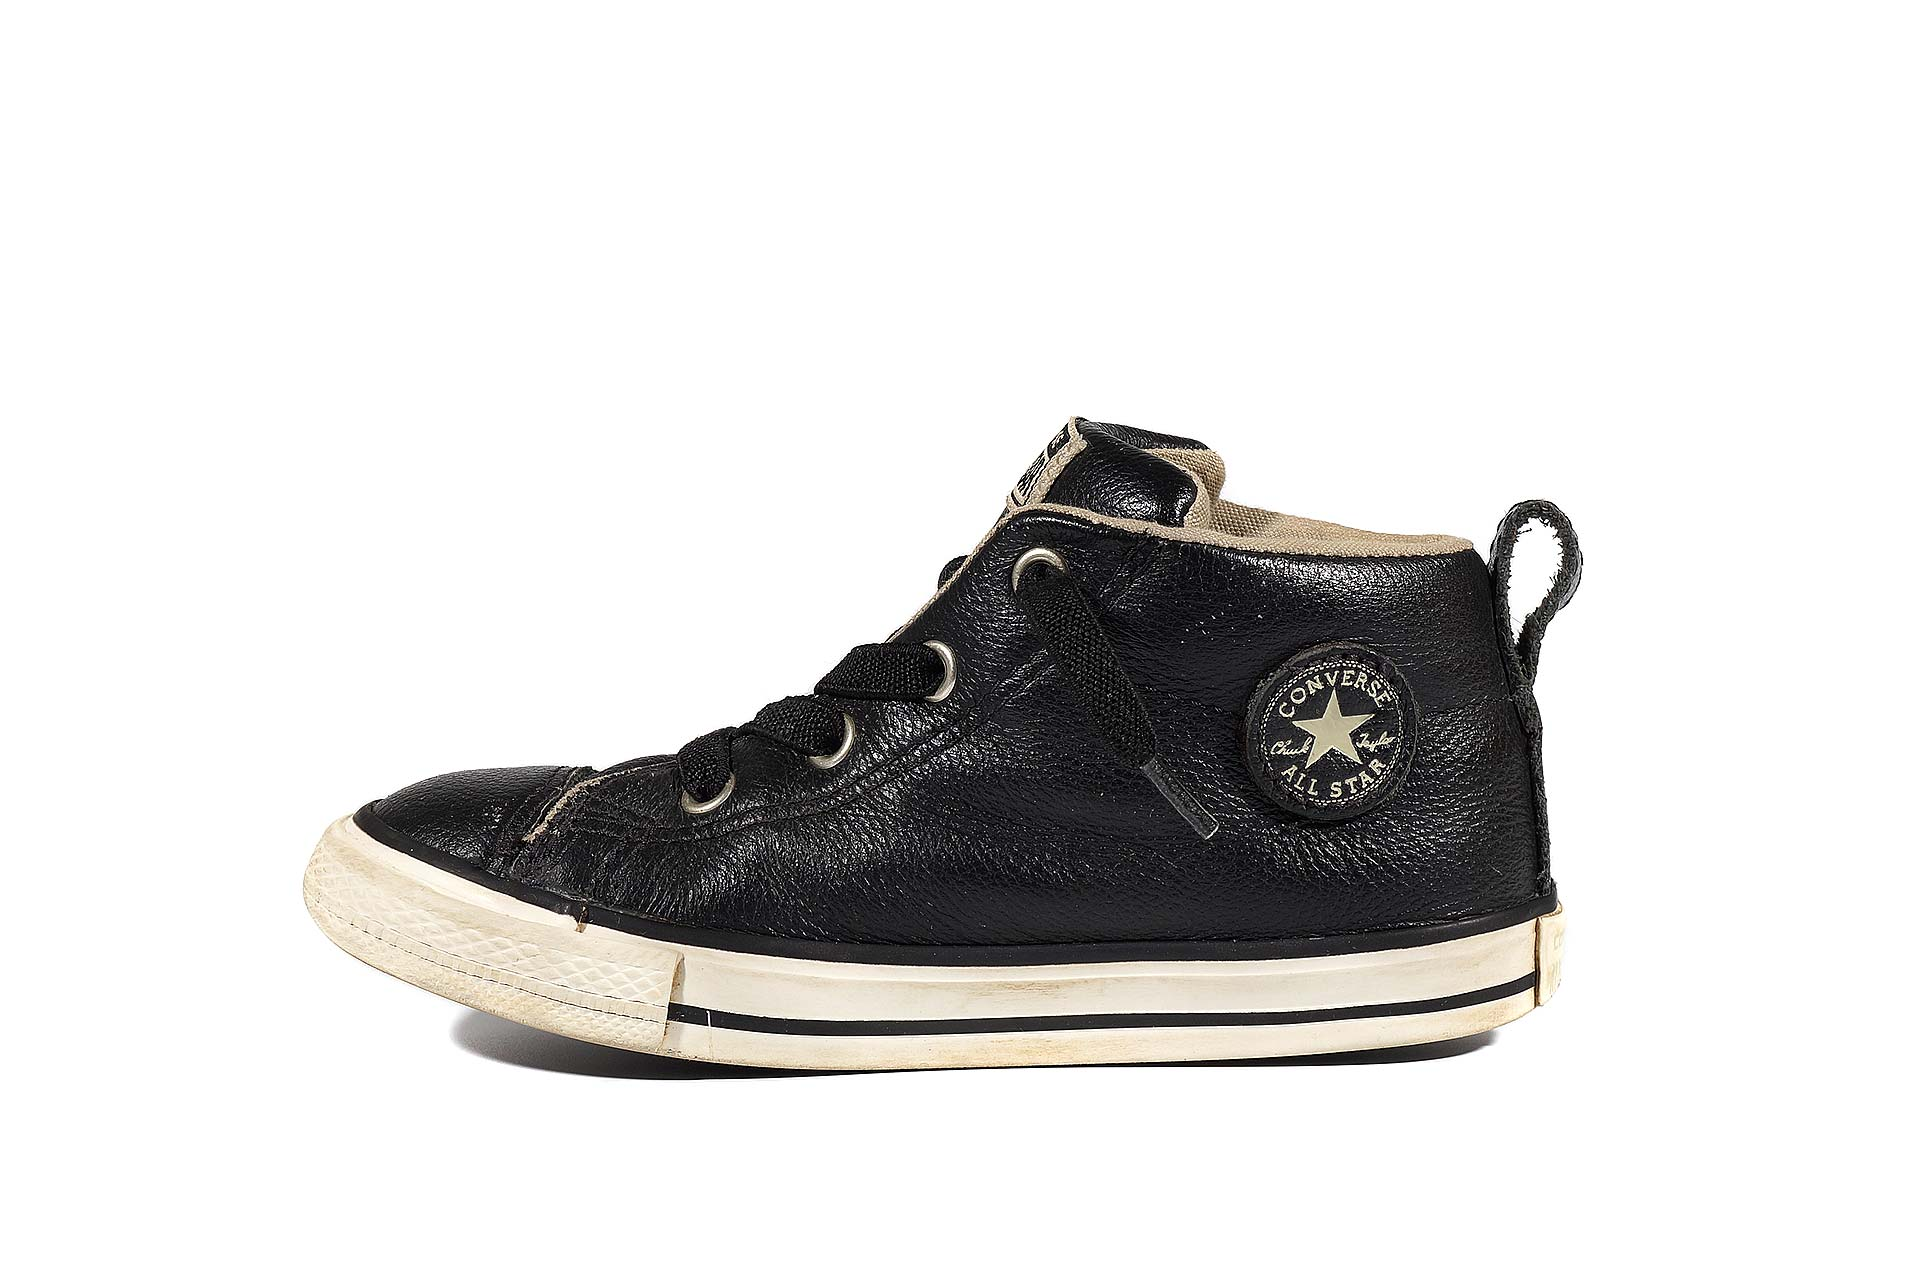 lowest price c8486 c0f1d Converse kids Chuck Taylor All Star Street Mid Leather 732516 (00003-U)  sneakers used buy online shop vintageshoes.ru